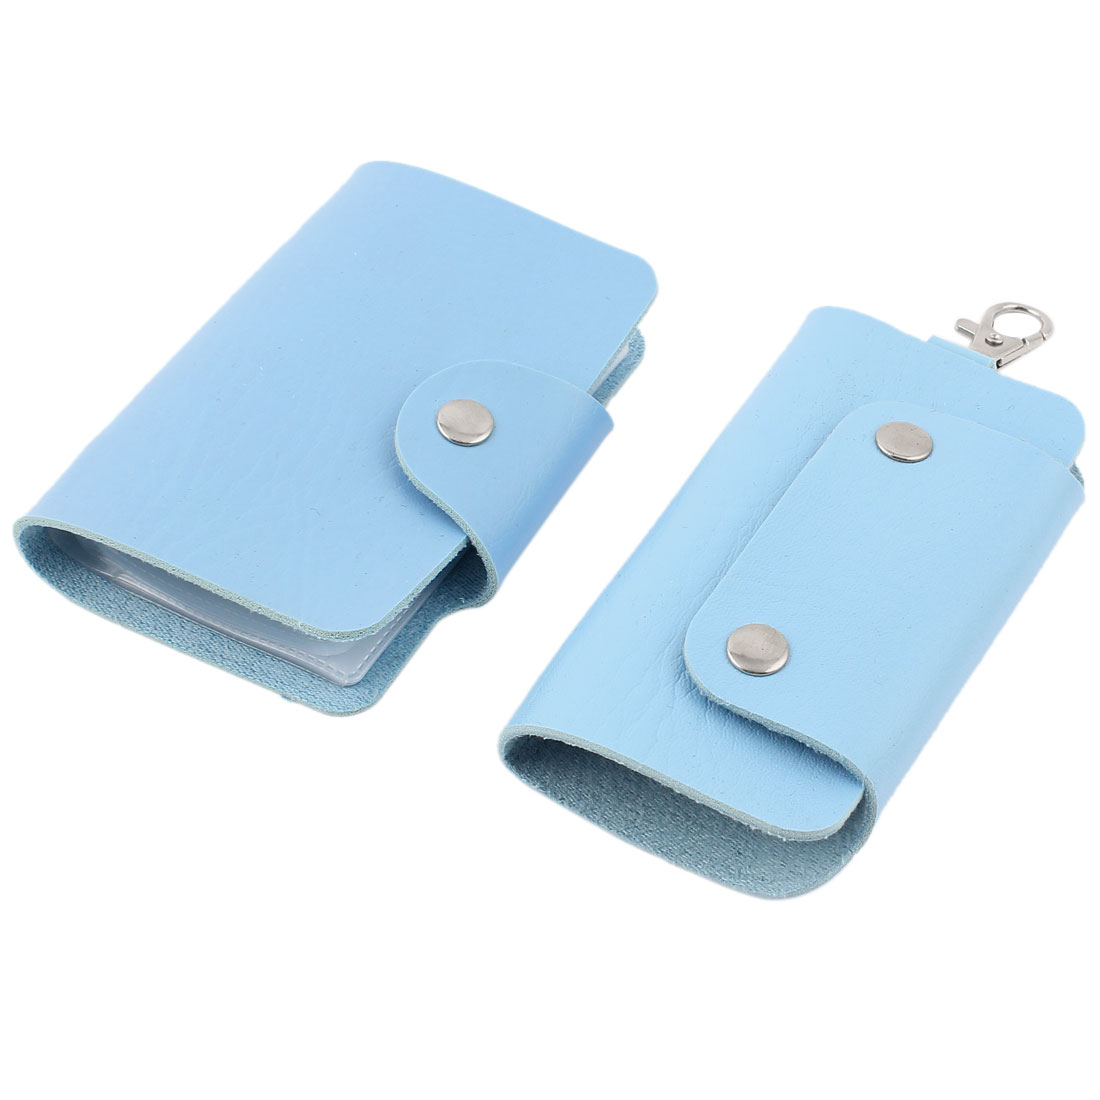 2 Pcs Sky Blue Rectangular Faux Leather Cover Car Auto Key Chain Ring Credit VIP Business Card Holder Wallet Case Organizer